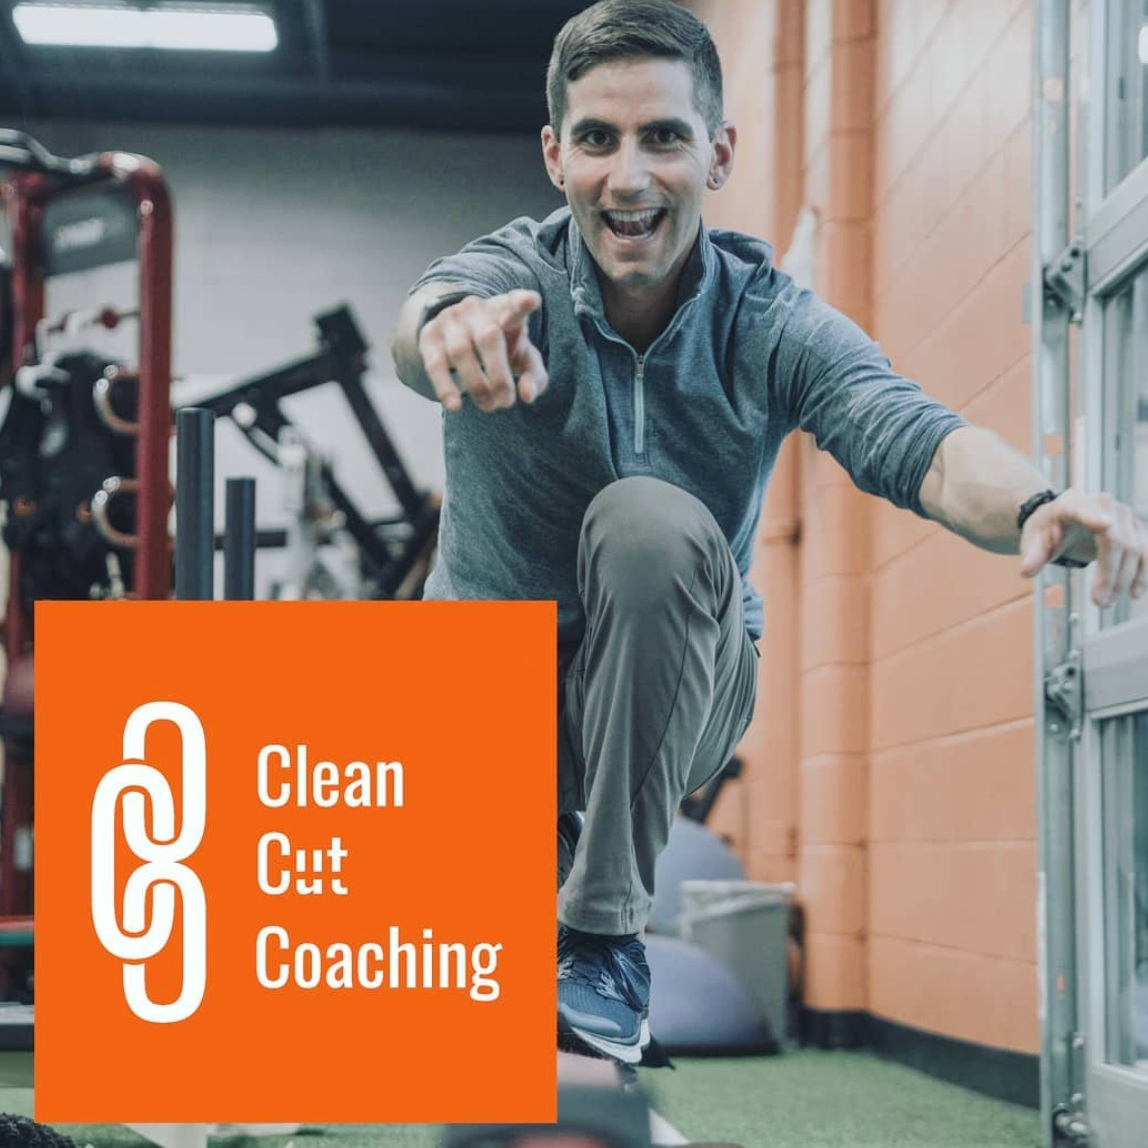 Clean+Cut+Coaching+Personal+Trainer+Rebrand